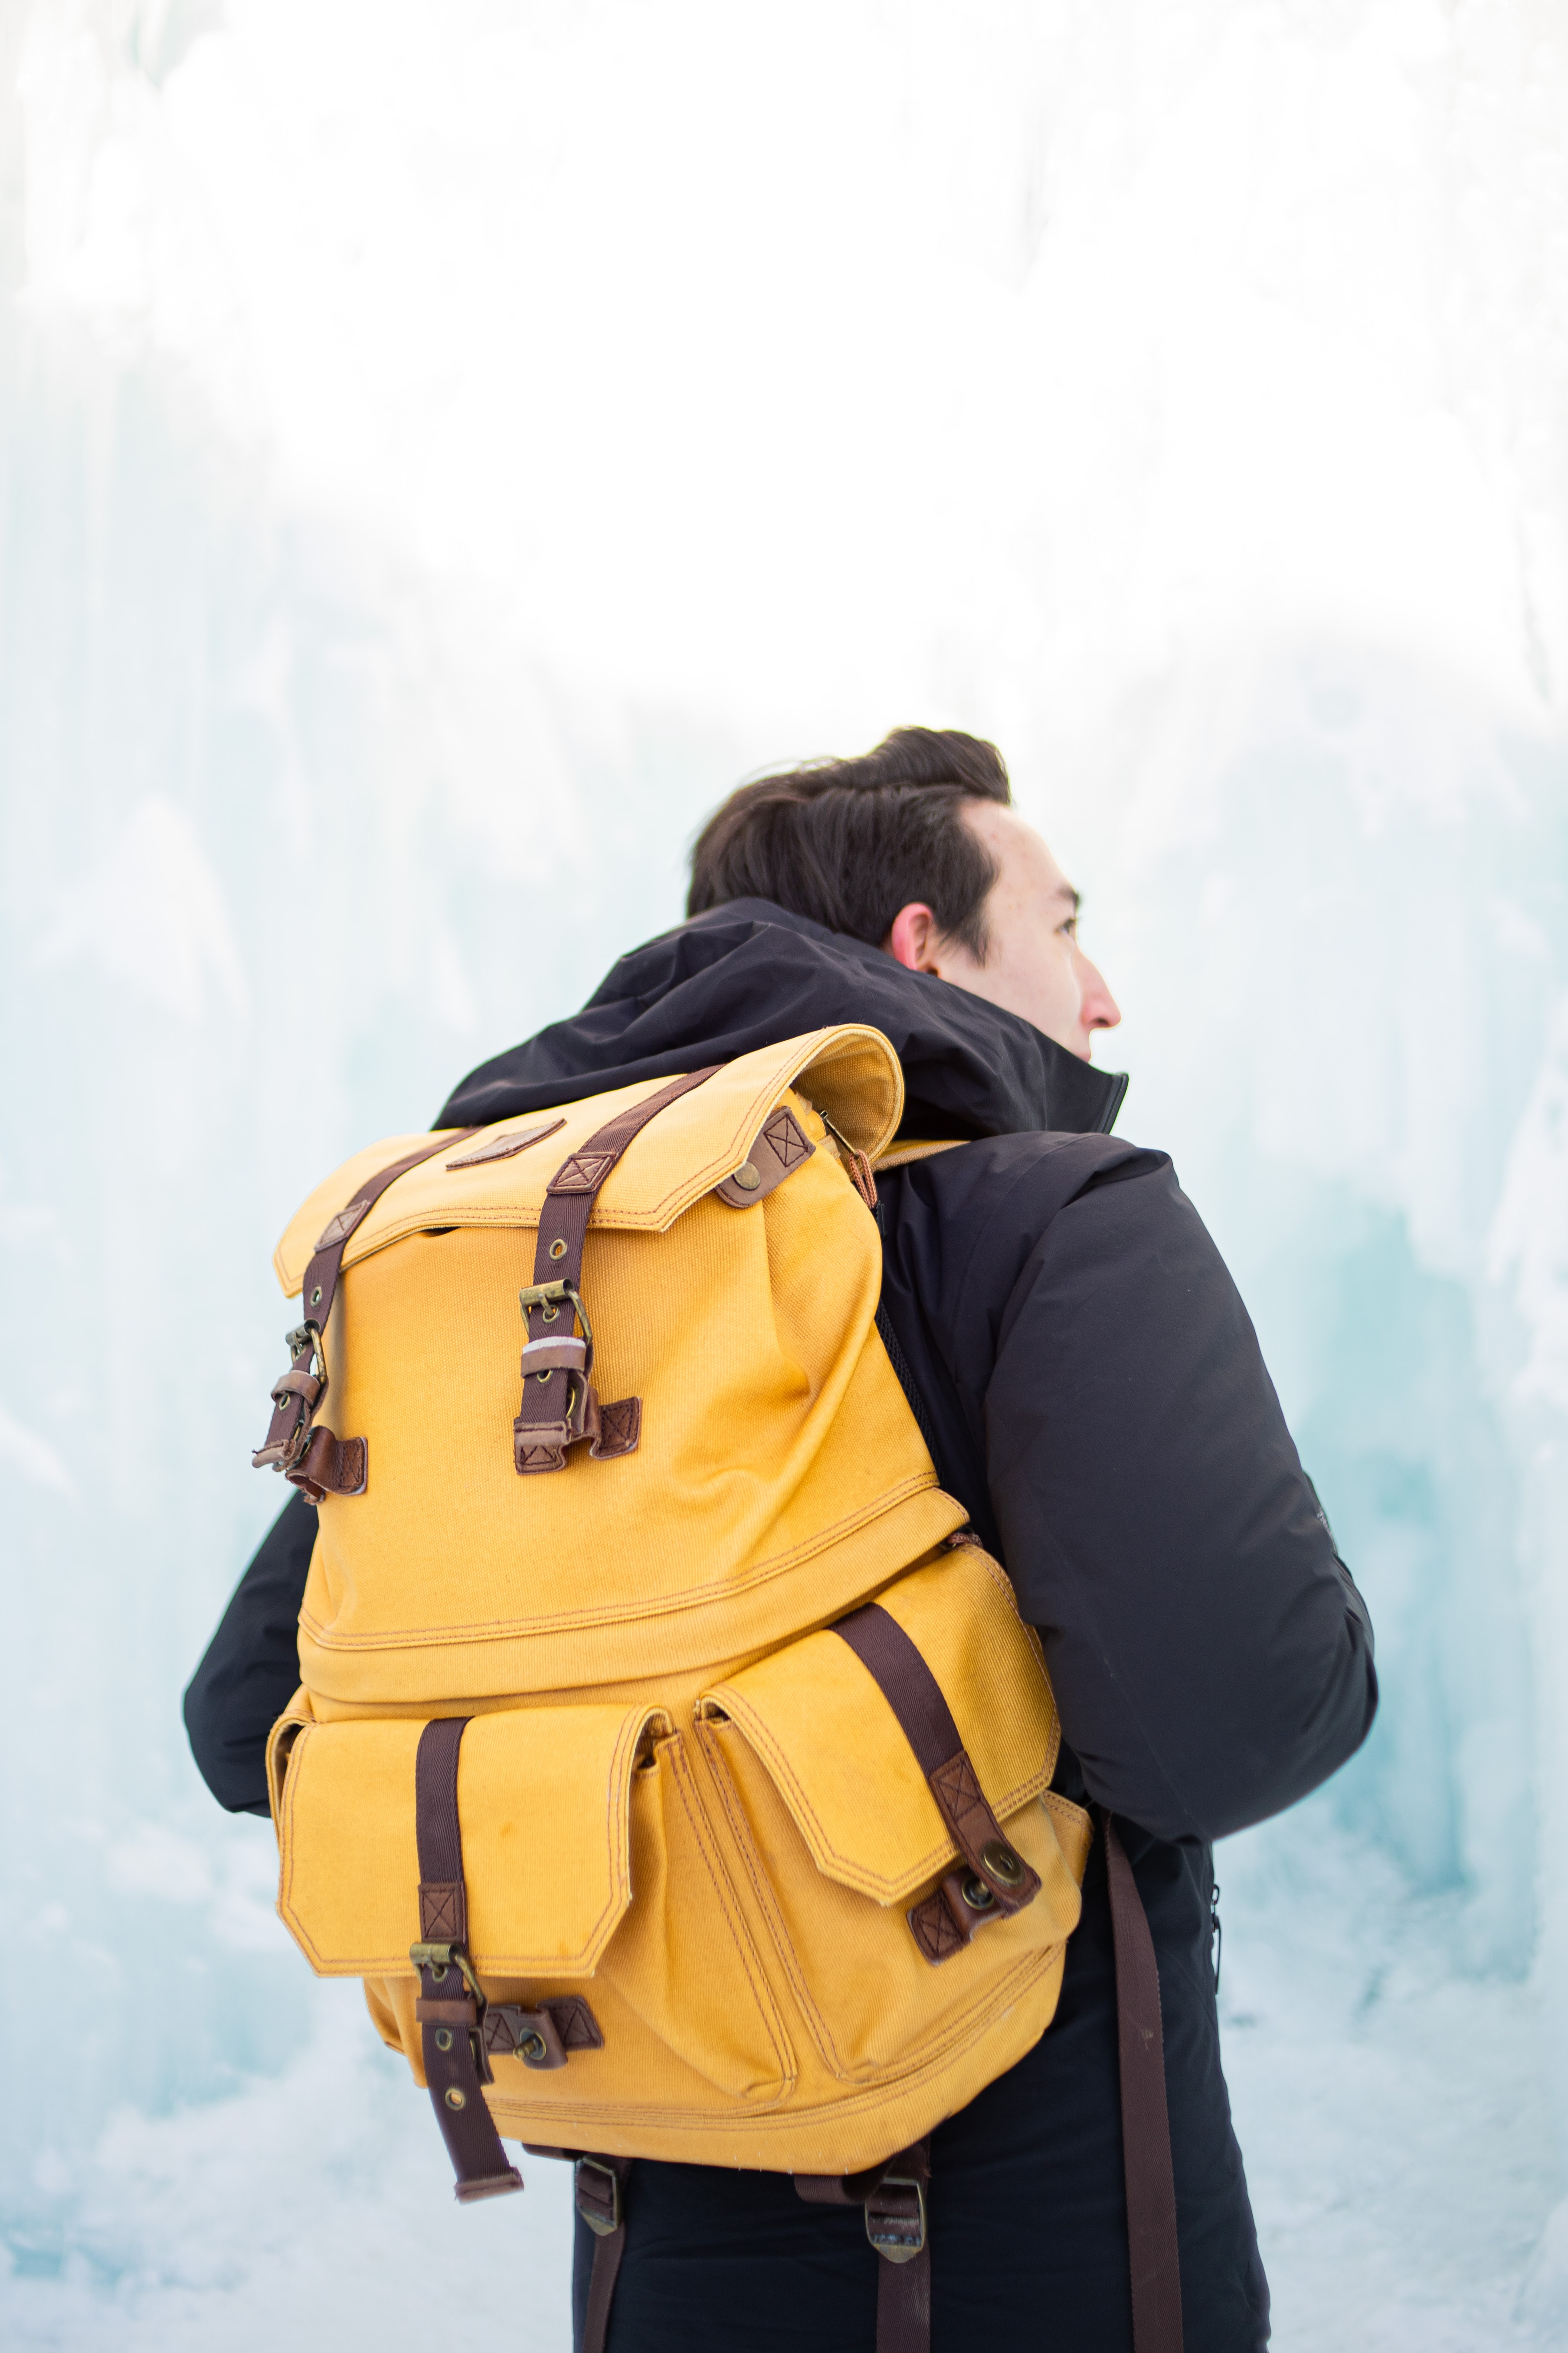 The Inateck Backpack Is An Aer Knockoff $200 Cheaper And Pretty Good Too